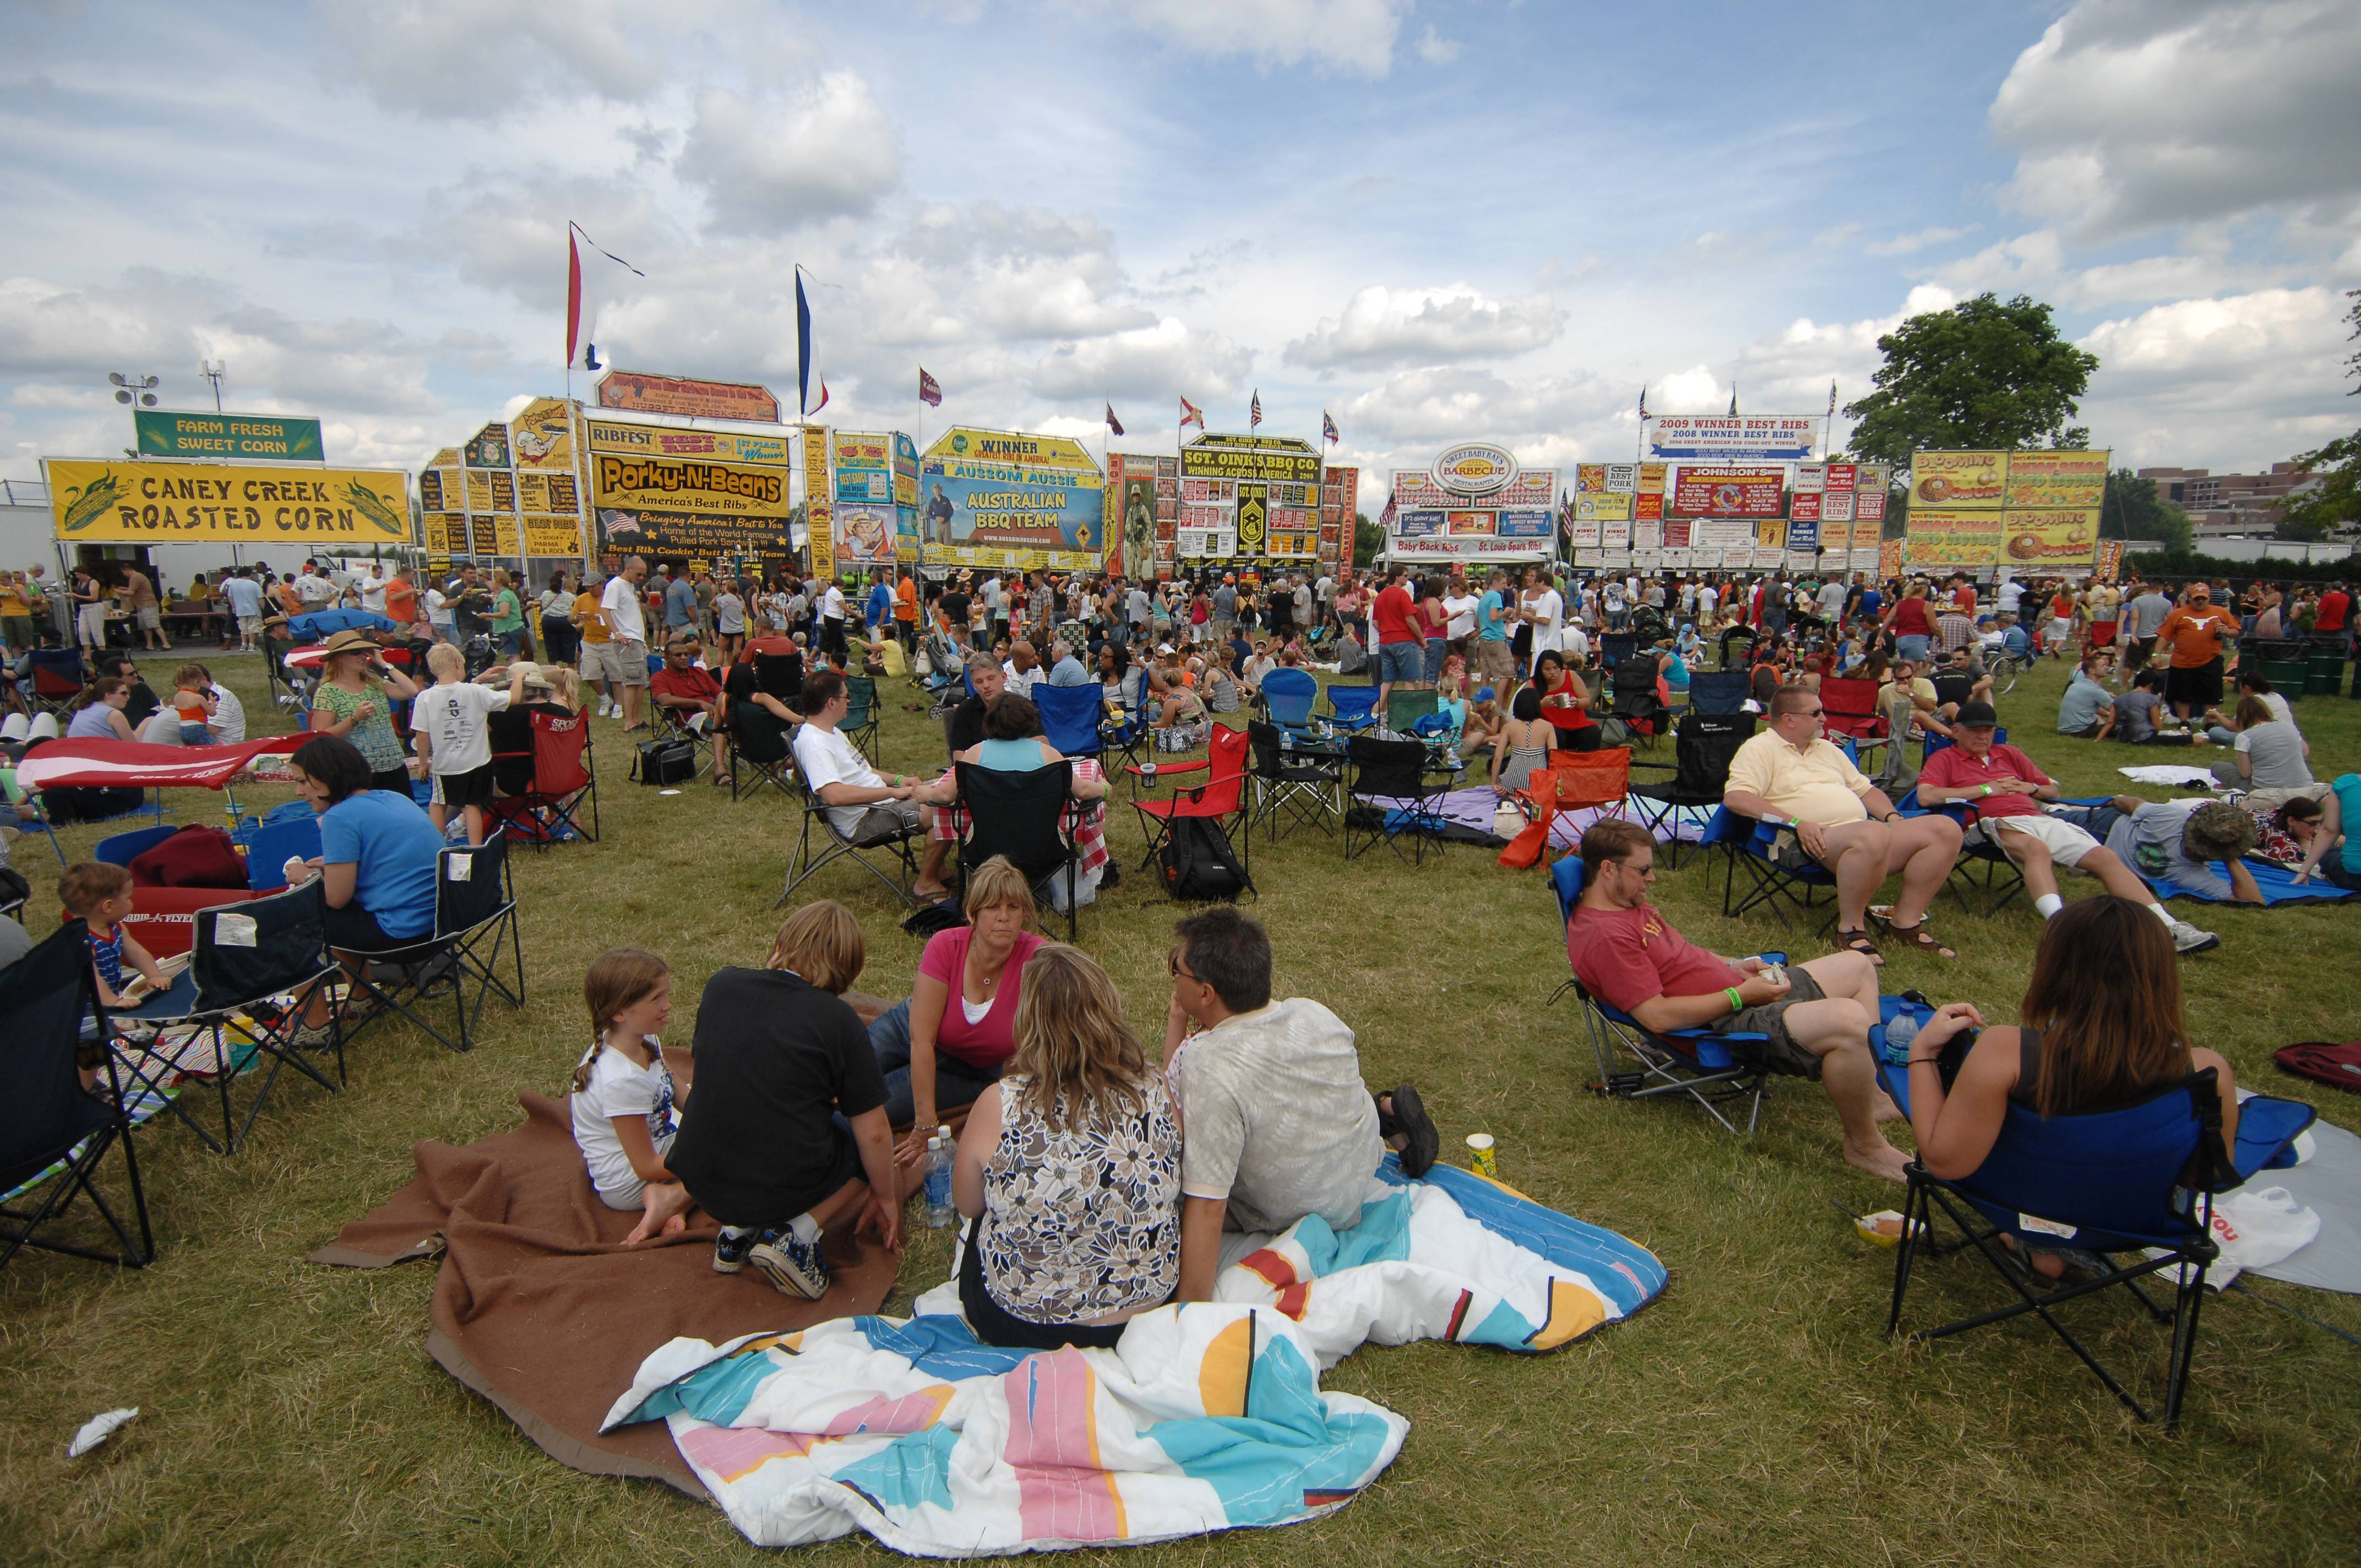 Naperville's Ribfest will play host to its first Hispanic Day from noon to 10 p.m. Saturday, July 5, with Latino music, announcements in Spanish and food from Mexican restaurant Sergio's Cantina of Geneva along with traveling rib vendors.